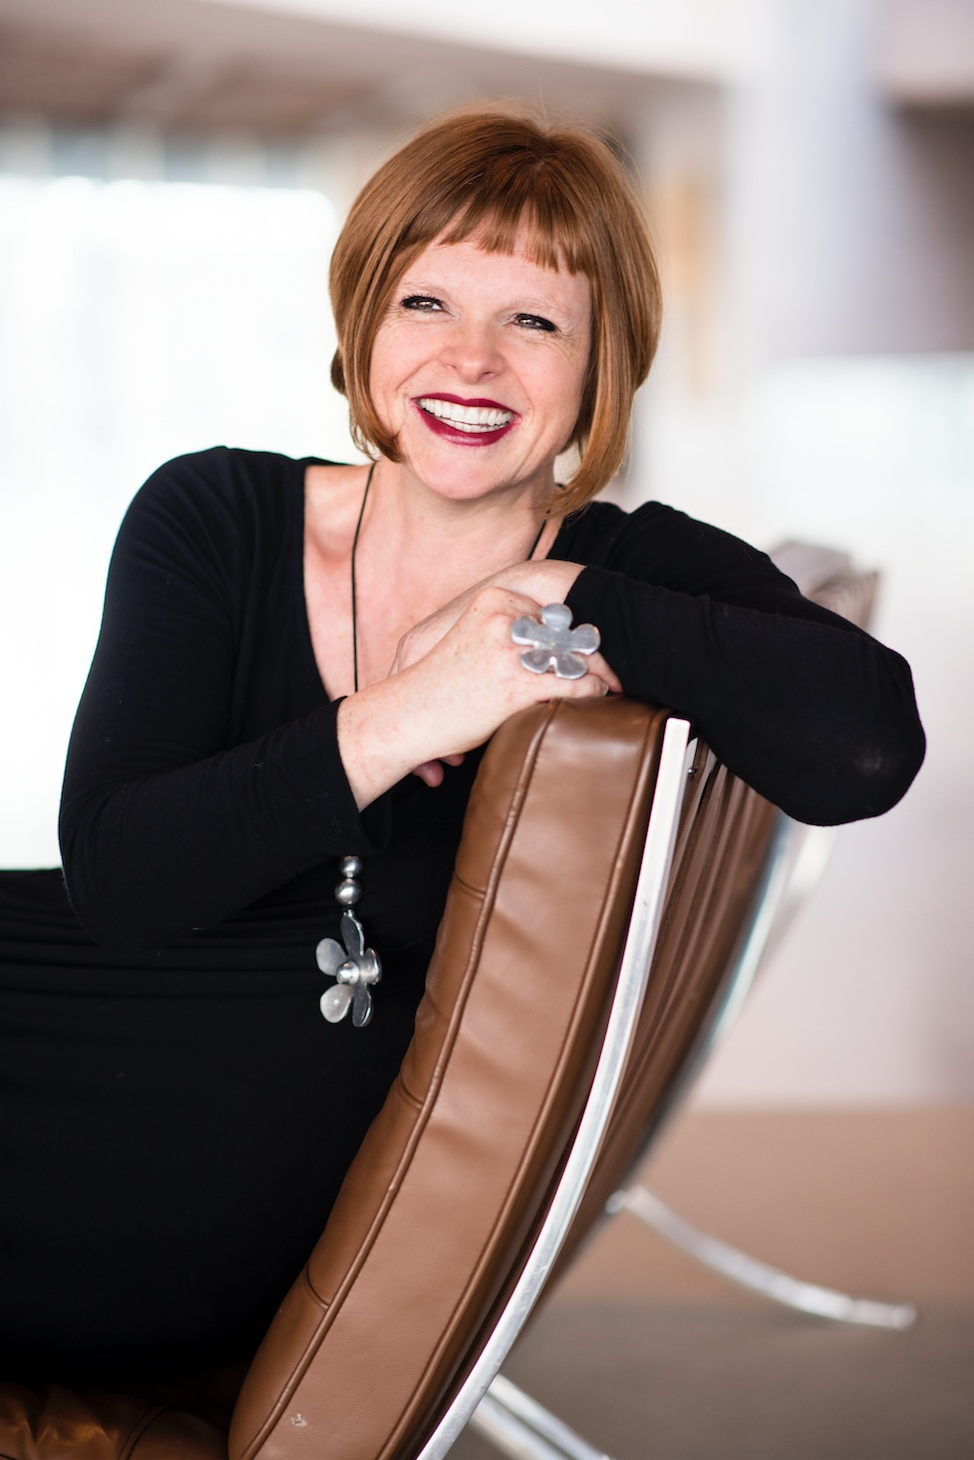 Jacqueline Pirtle, Author of 365 Days of Happiness